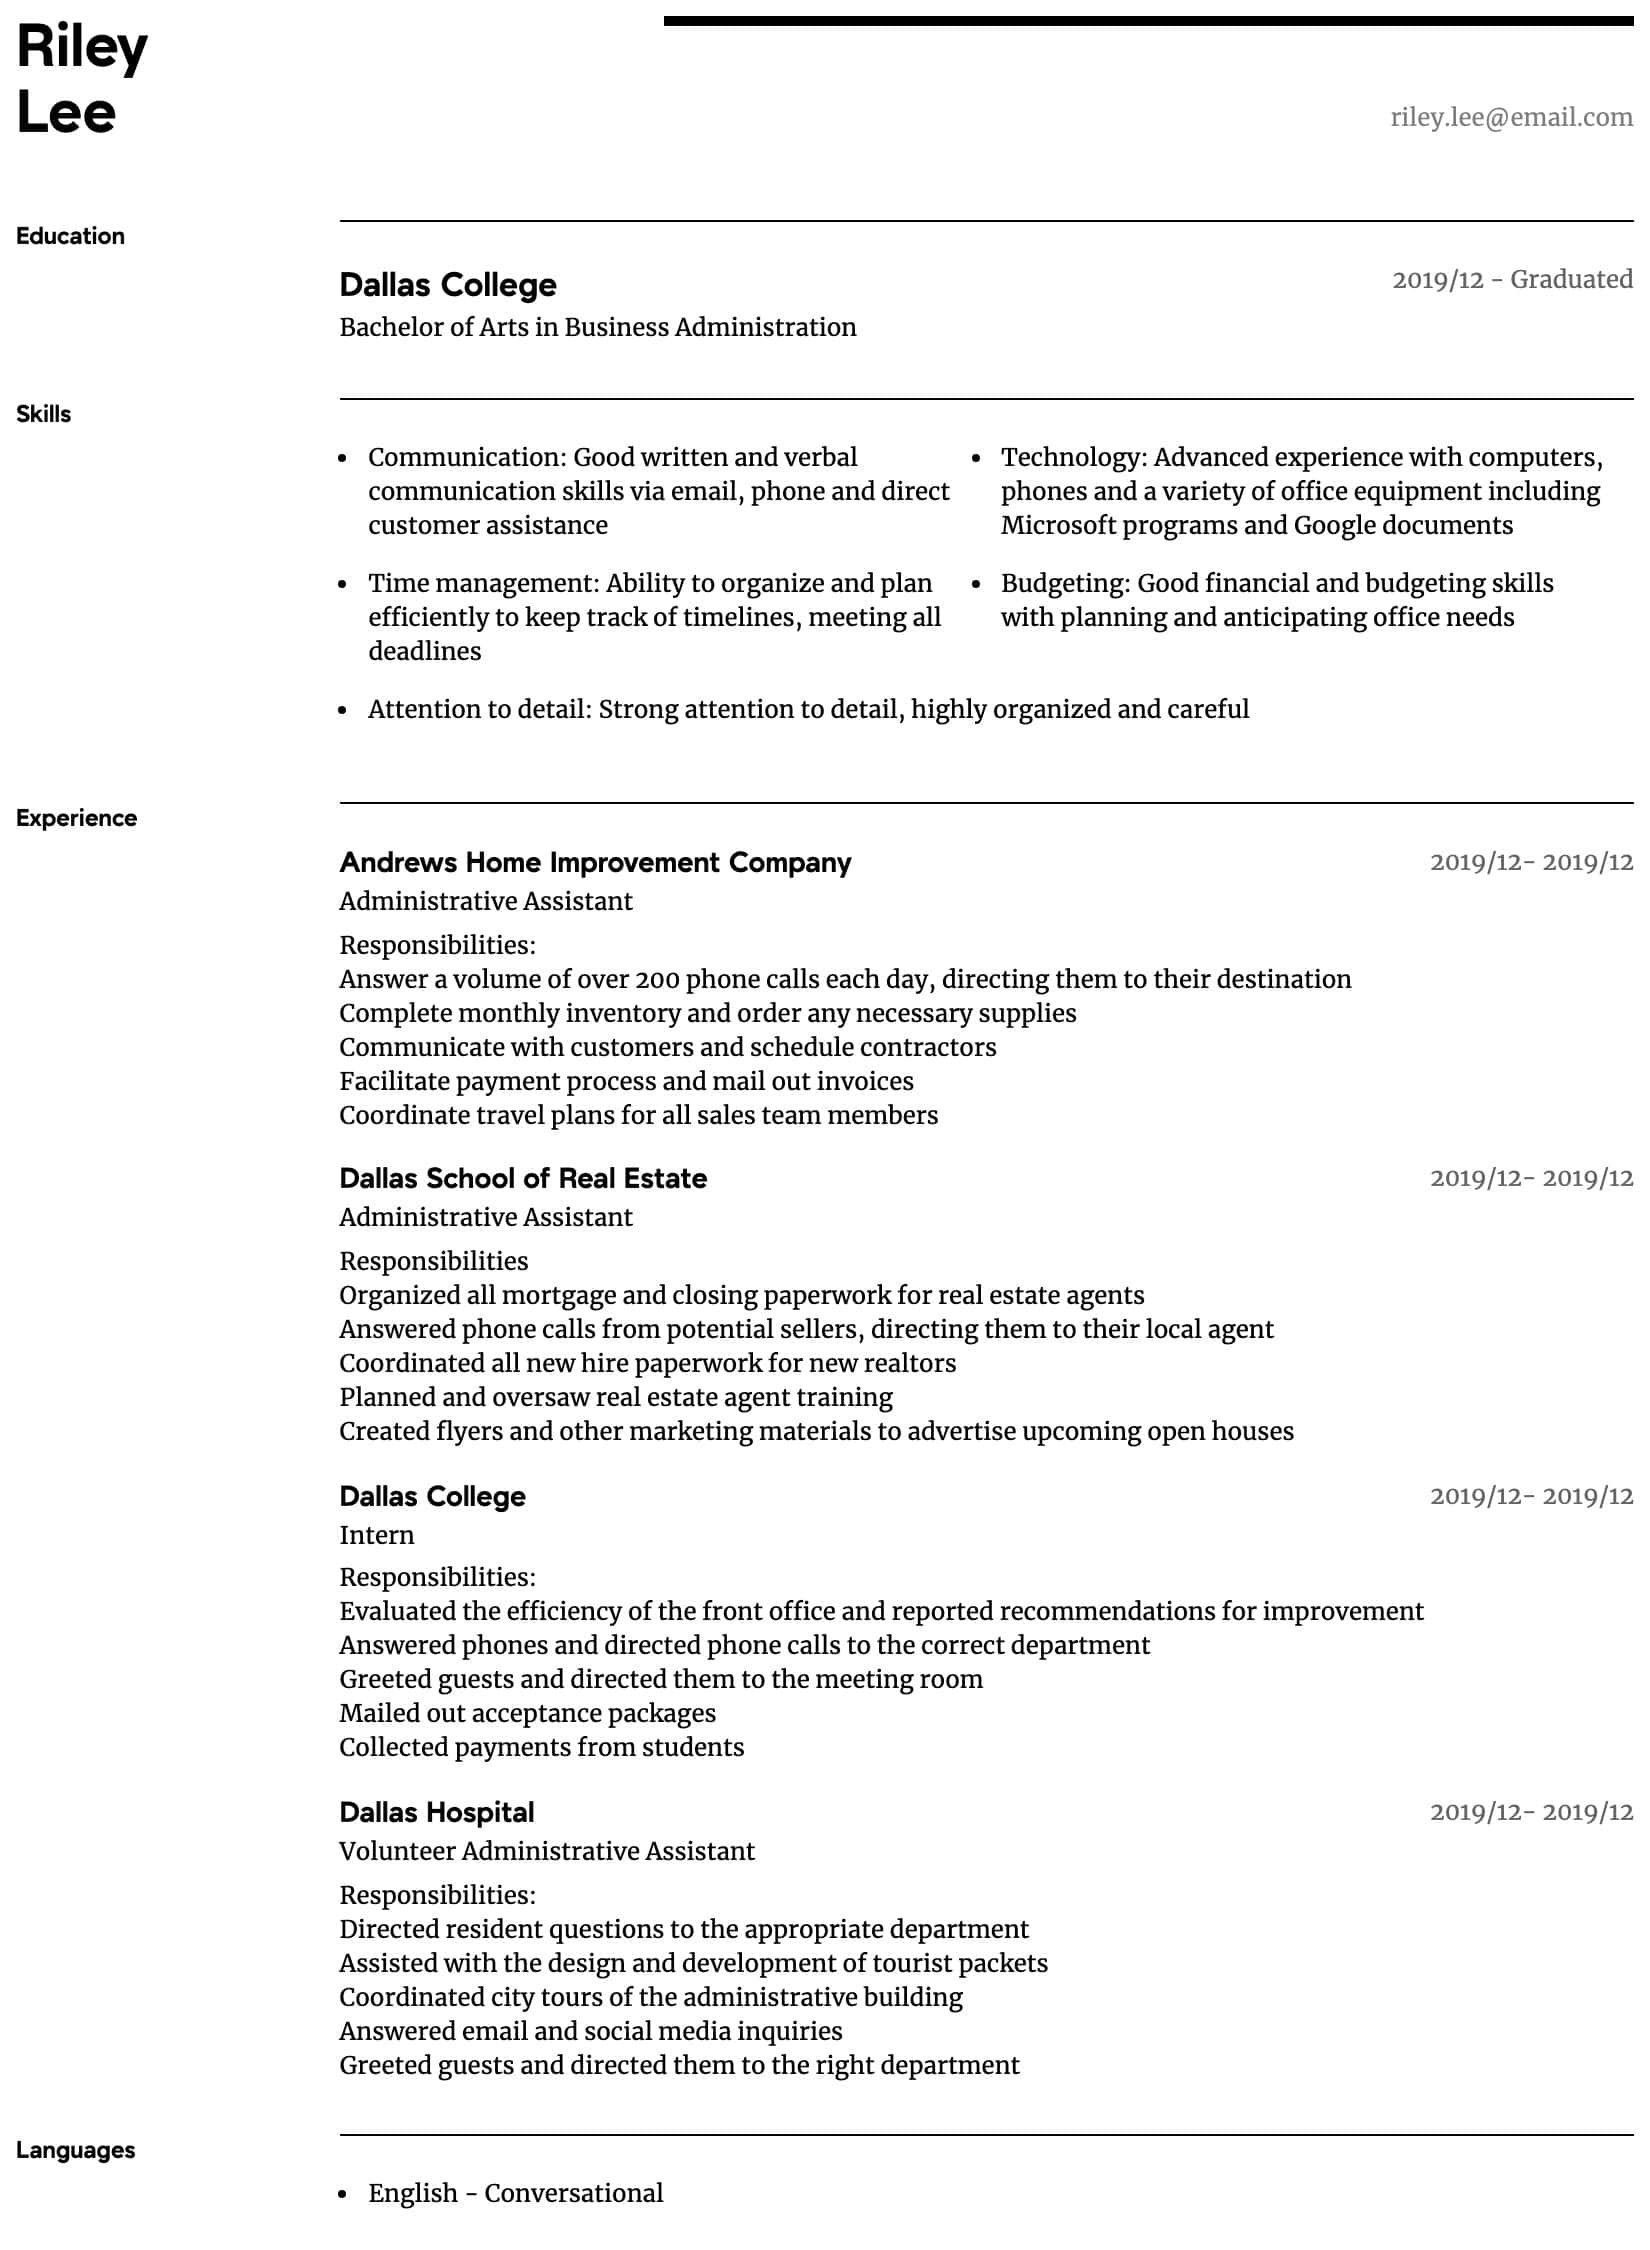 administrative assistant resume samples all experience levels summary intermediate name Resume Administrative Assistant Resume Summary